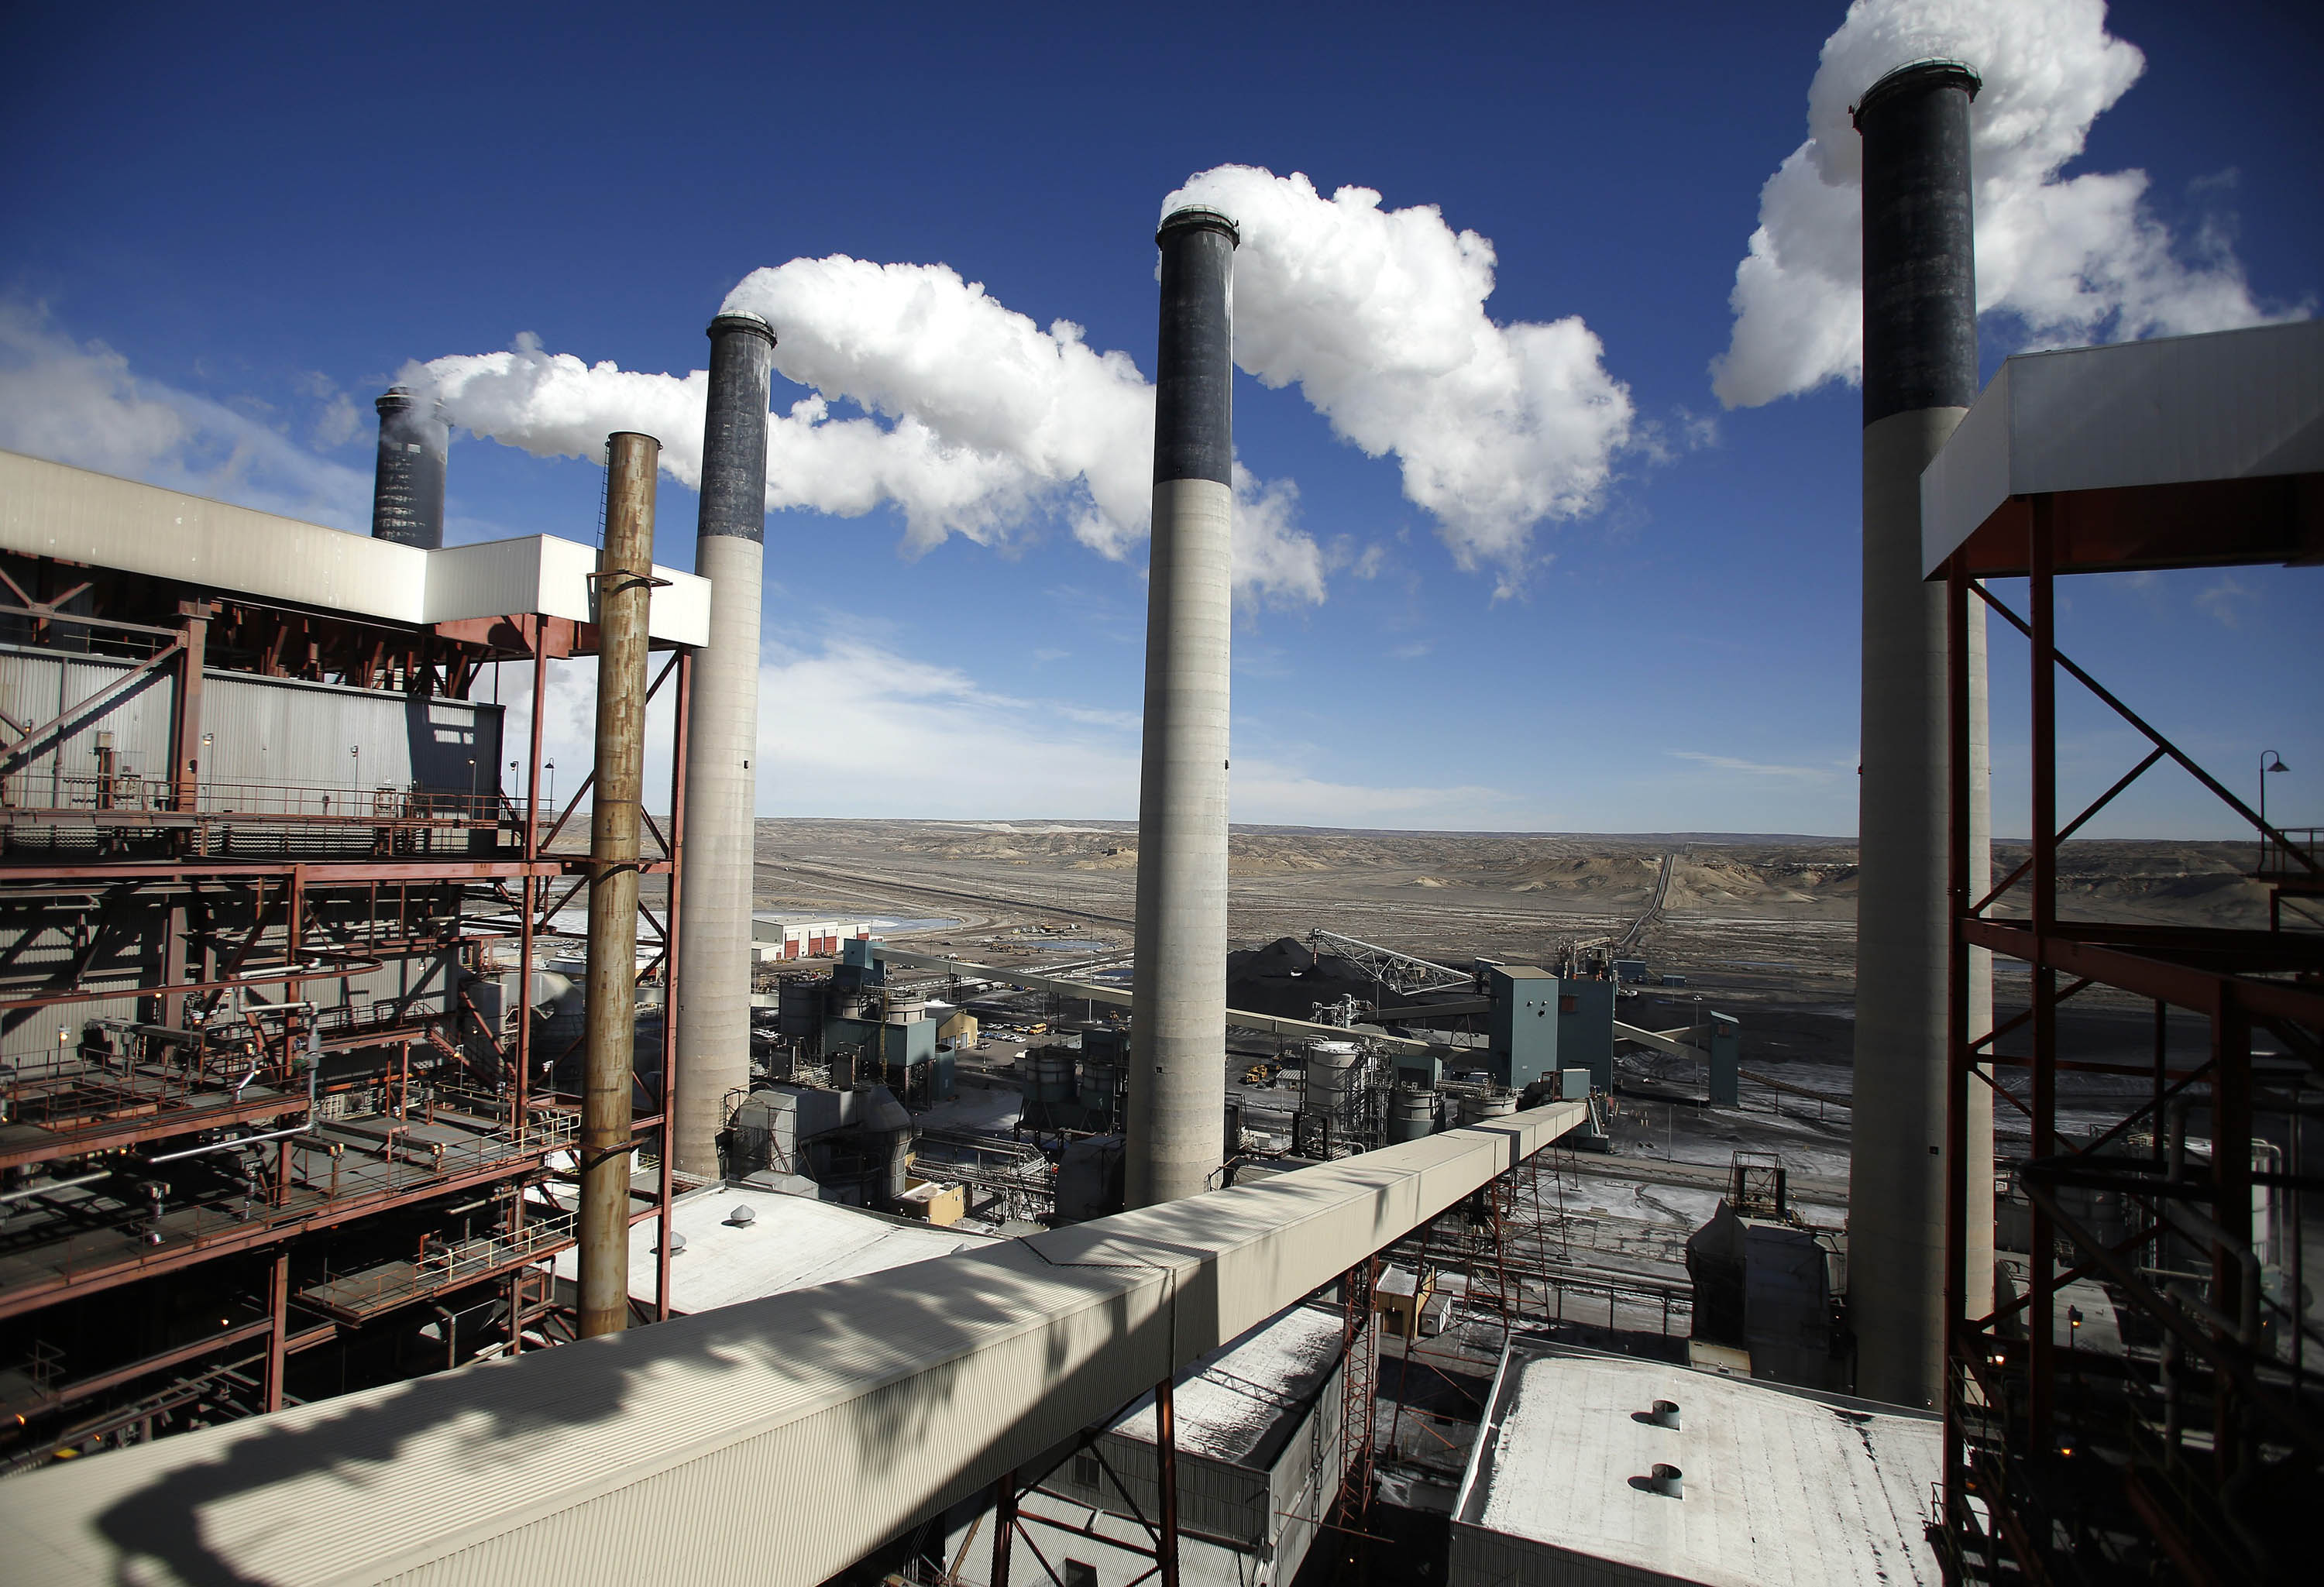 Coal plants like this one in Wyoming may eventually be closed under new climate regulations.